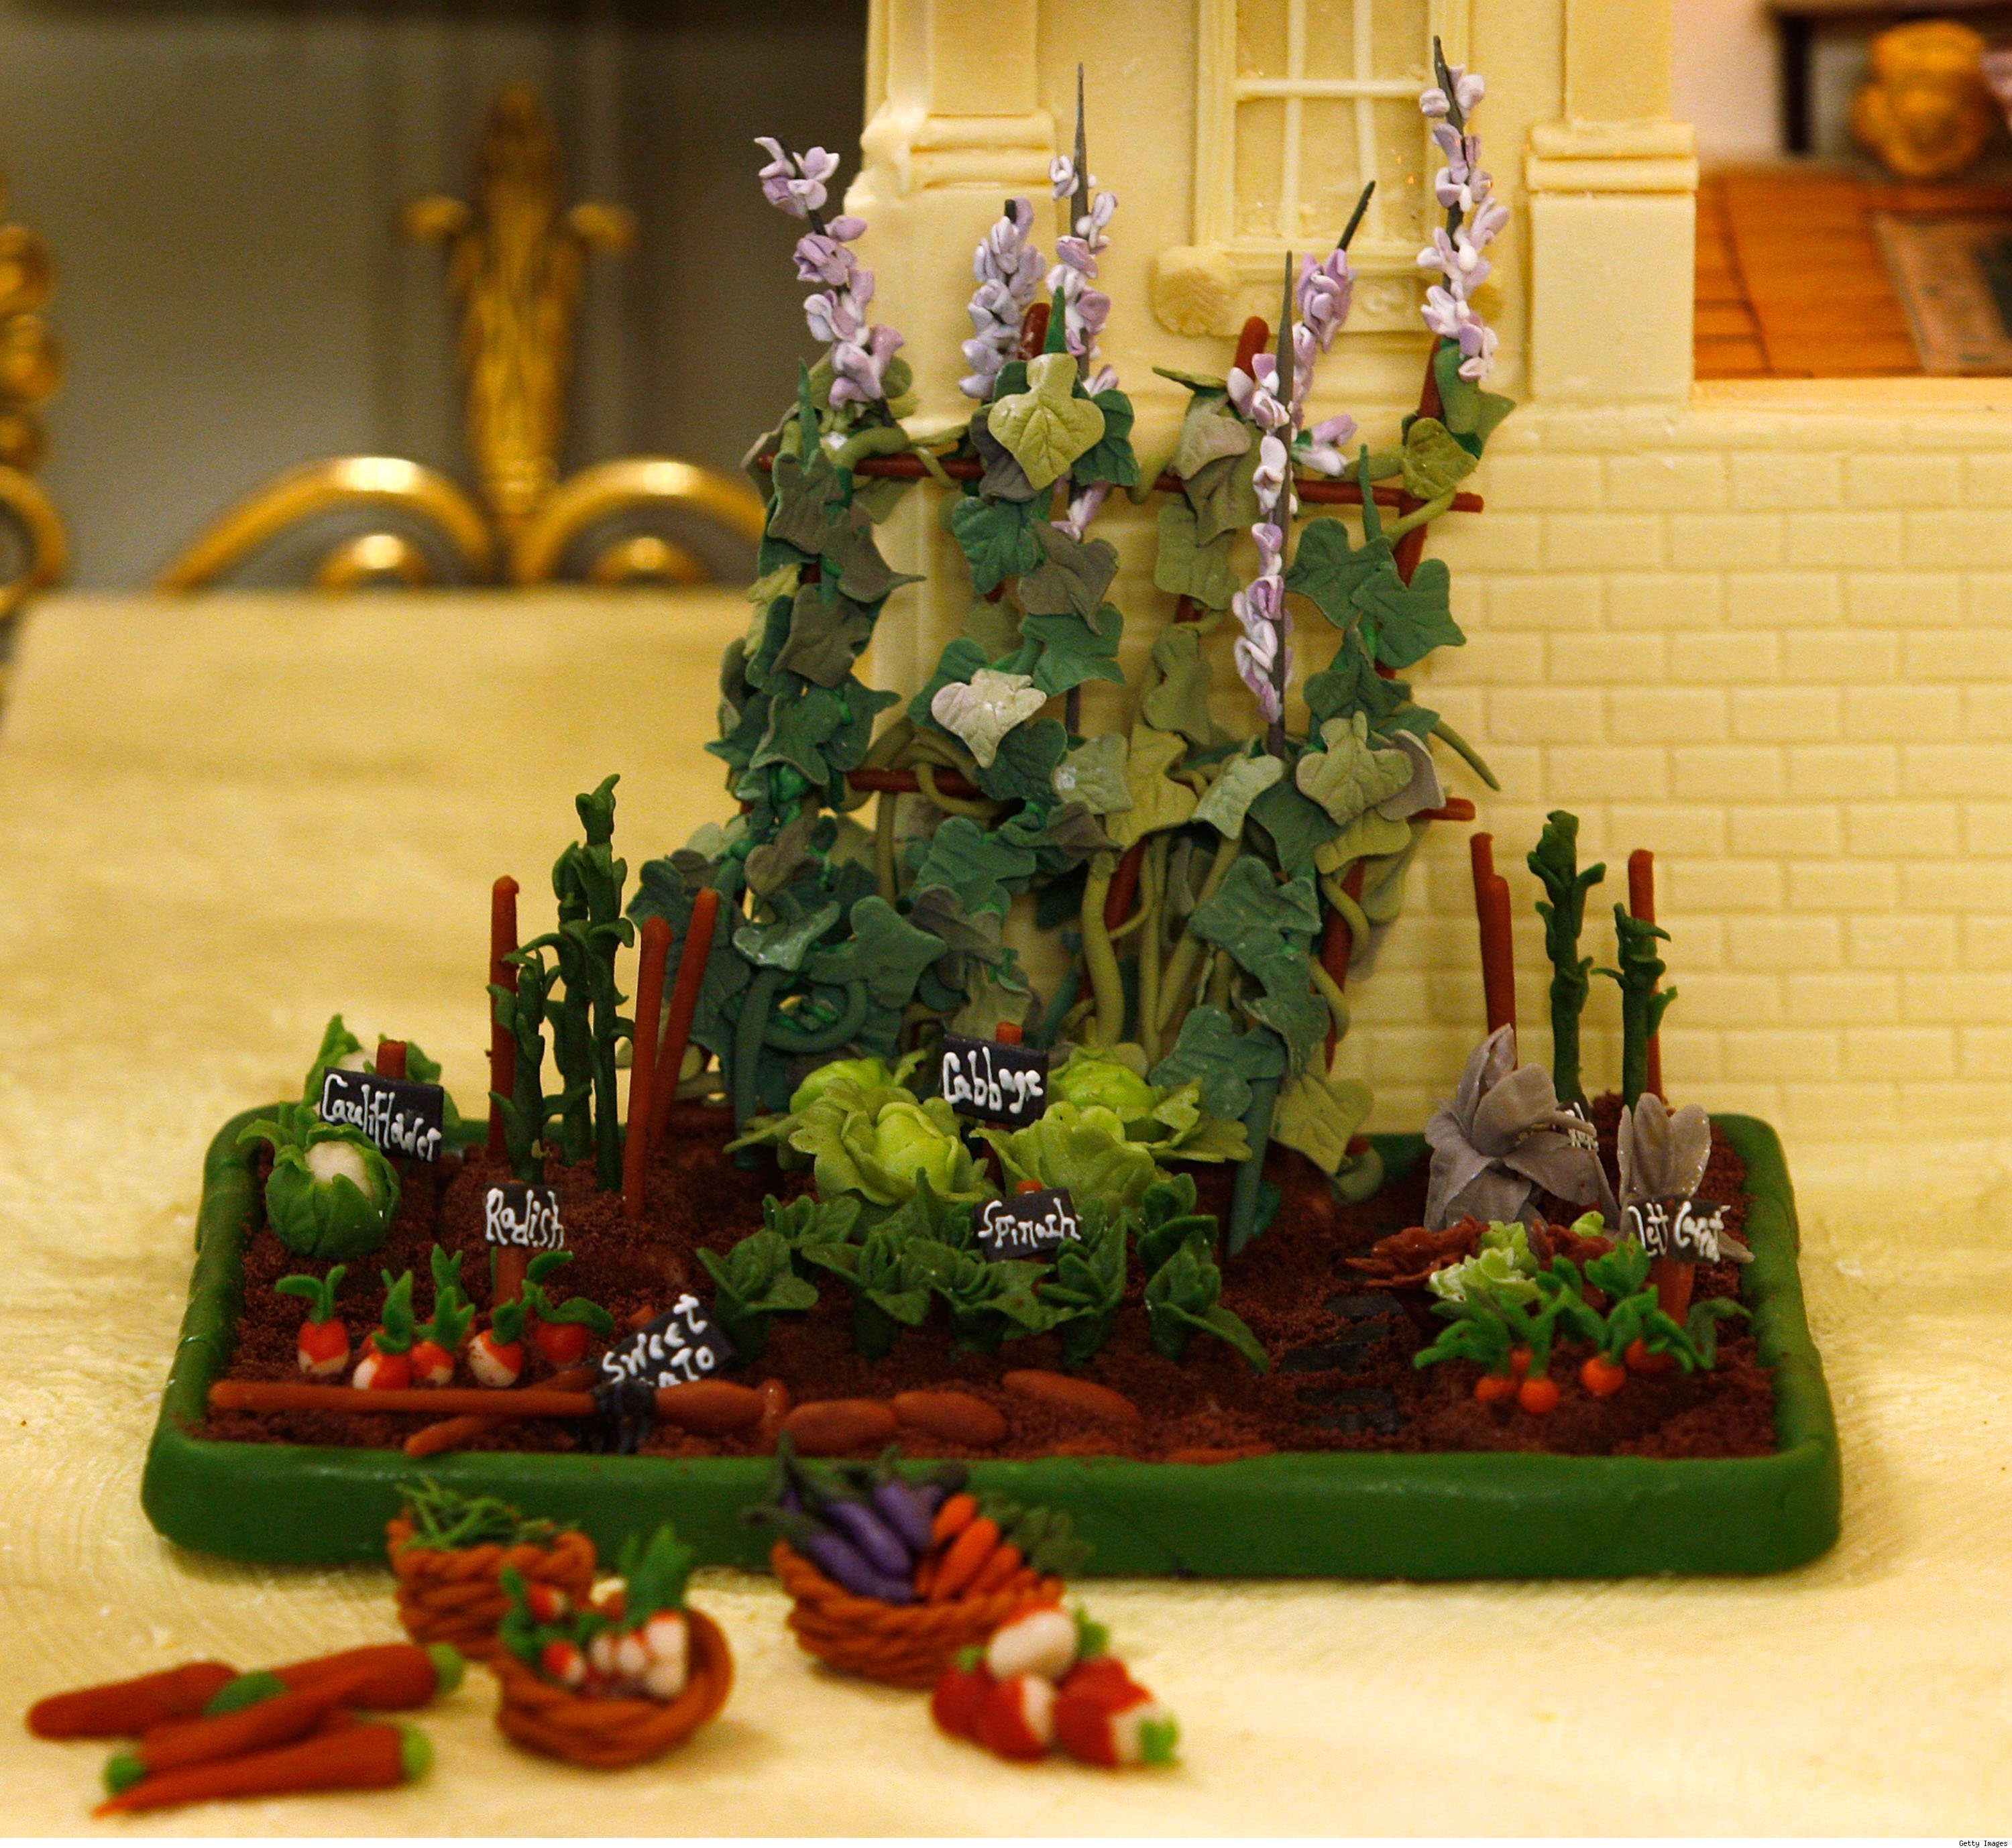 Marzipan Vegetable Garden